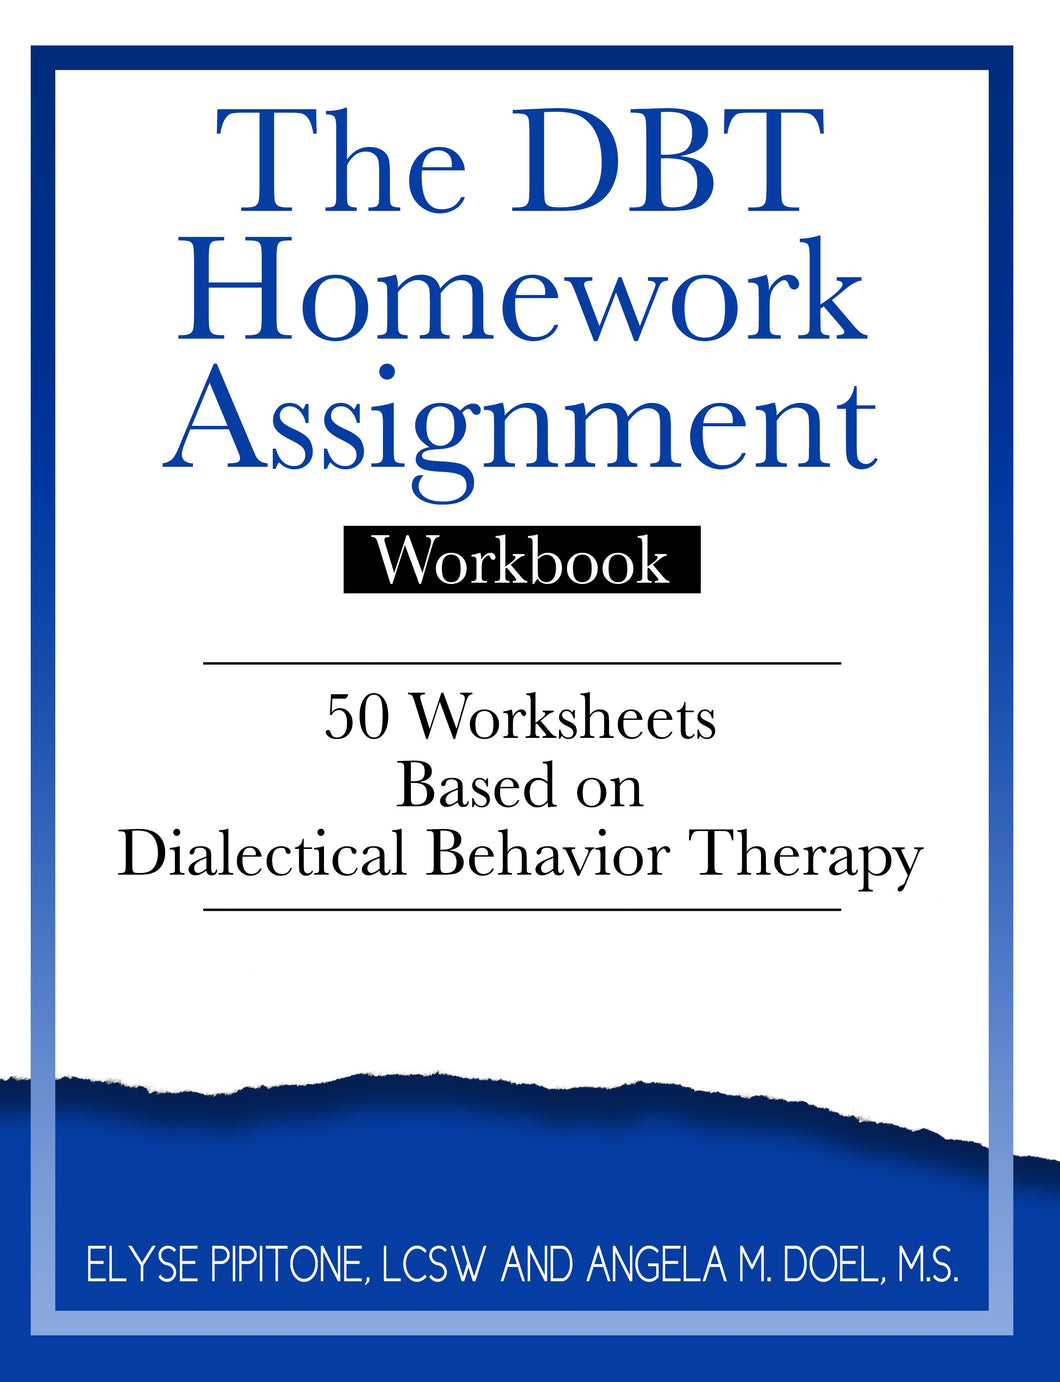 The DBT Assignment Workbook (PDF)